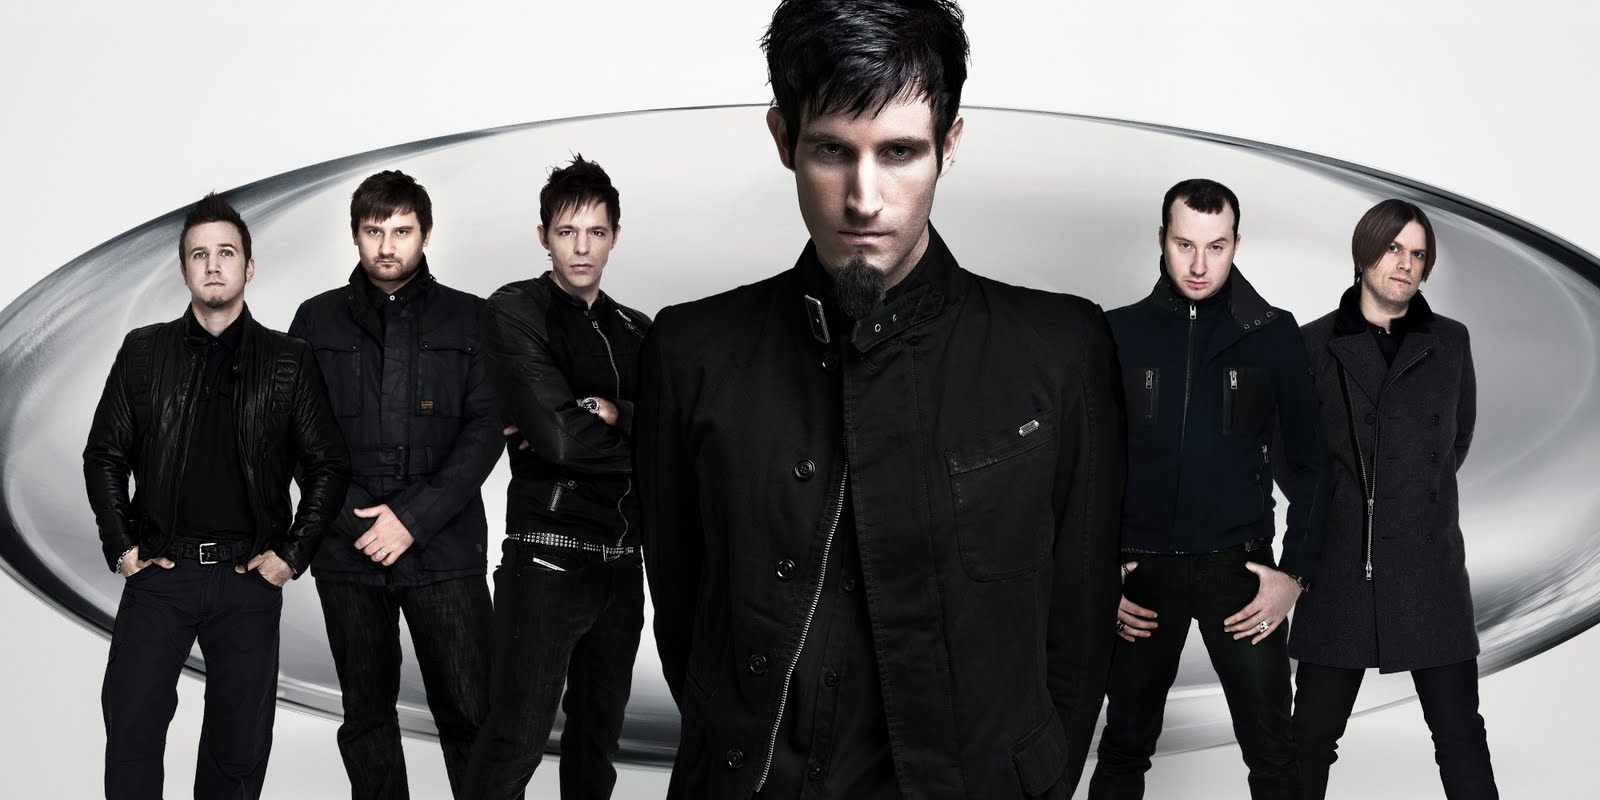 Pendulum to headline Ultra Singapore, alongside Tiesto, Hardwell, Nicky Romero, KSHMR and more